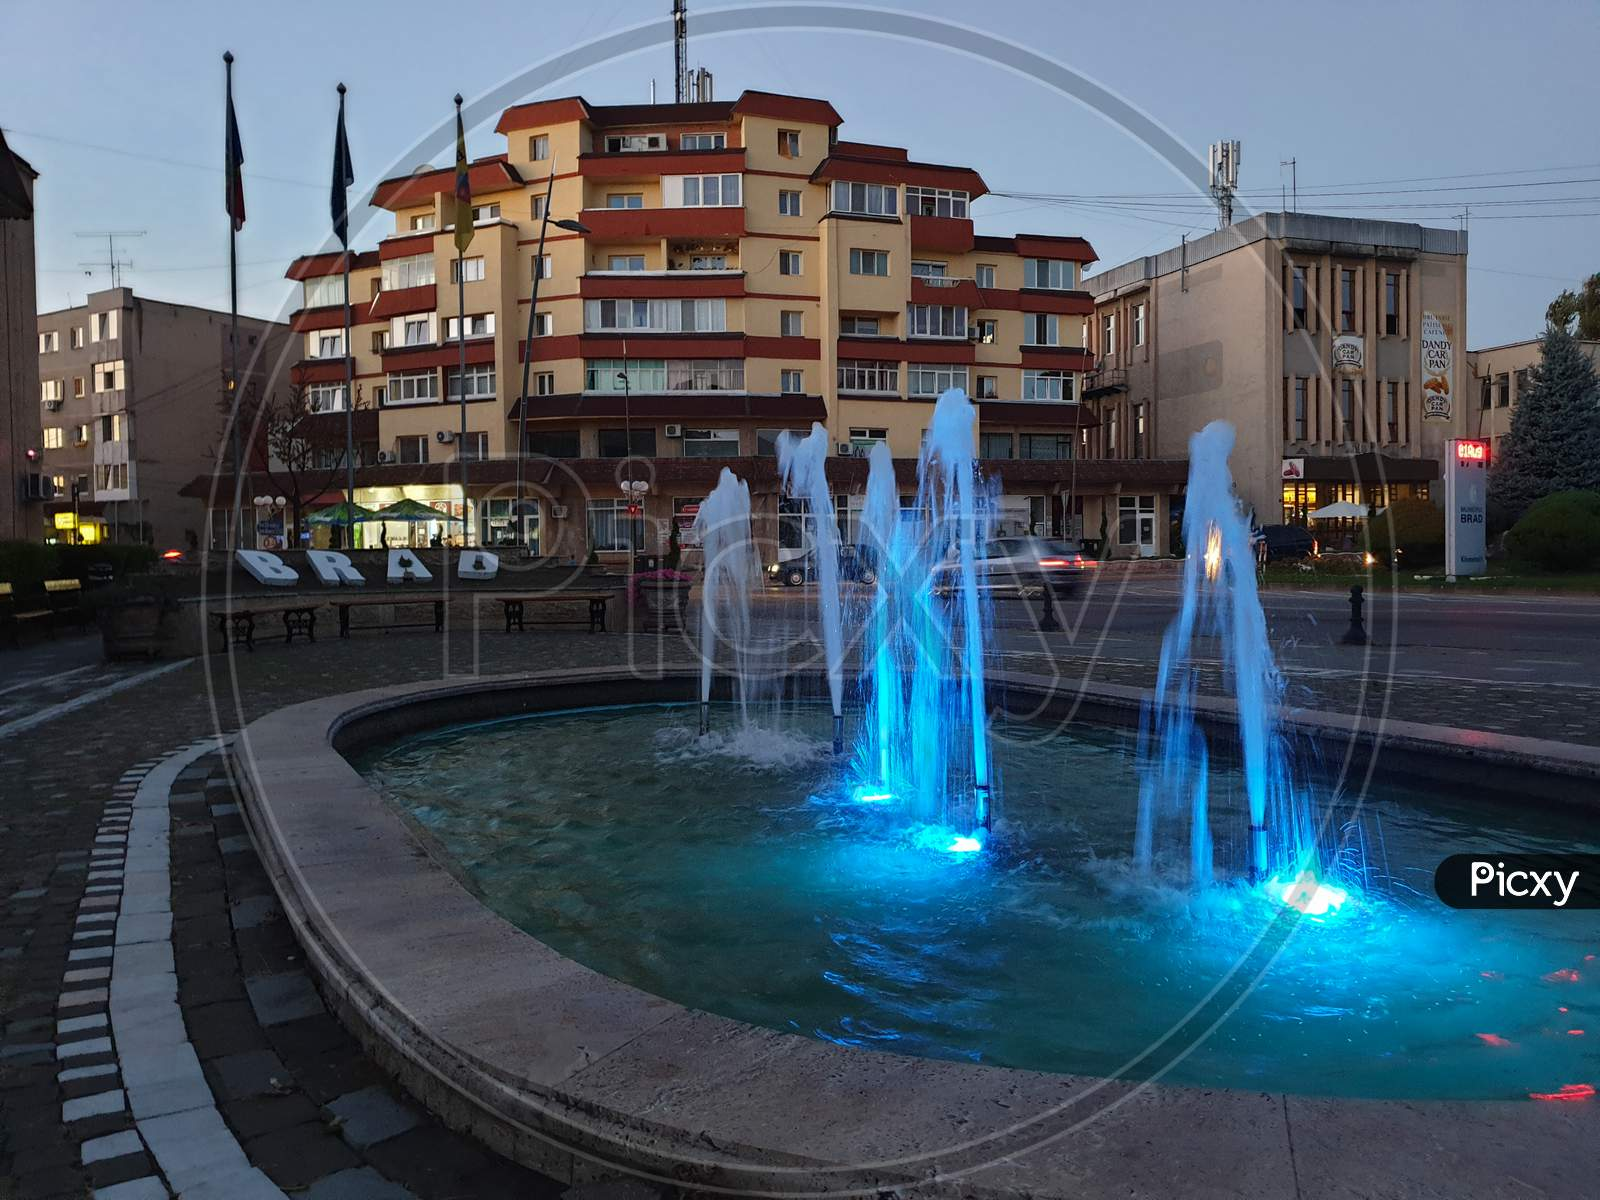 Brad Town Center Water Fountain In The Evening